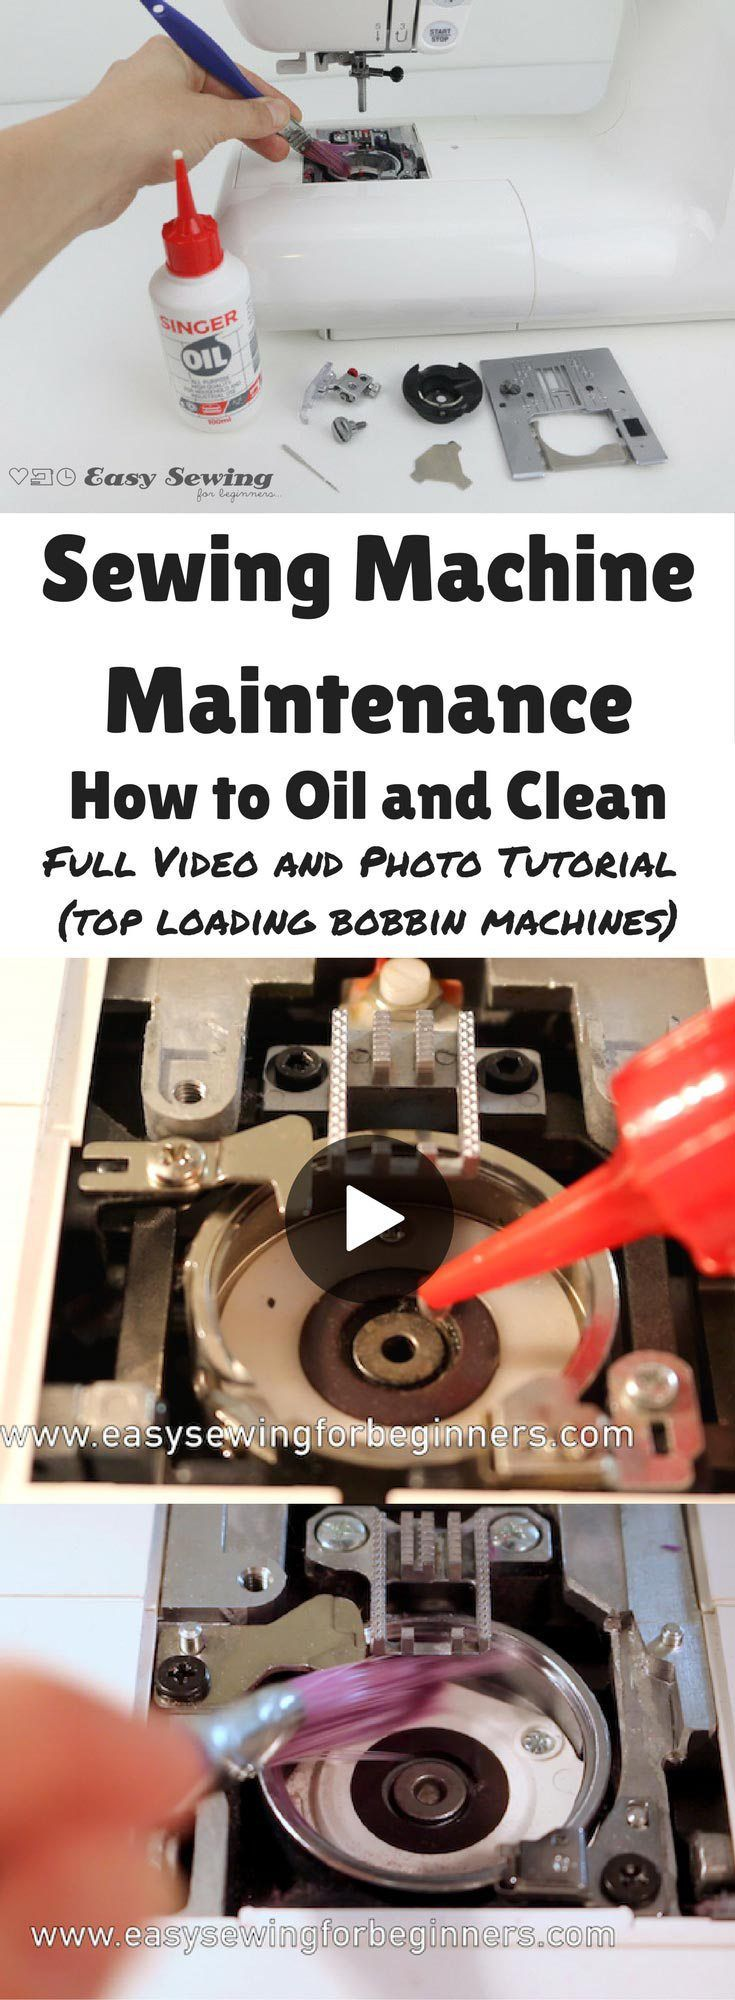 Sewing Machine Maintenance: How To Oil And Clean Video Tutorial (top  Loading Bobbin